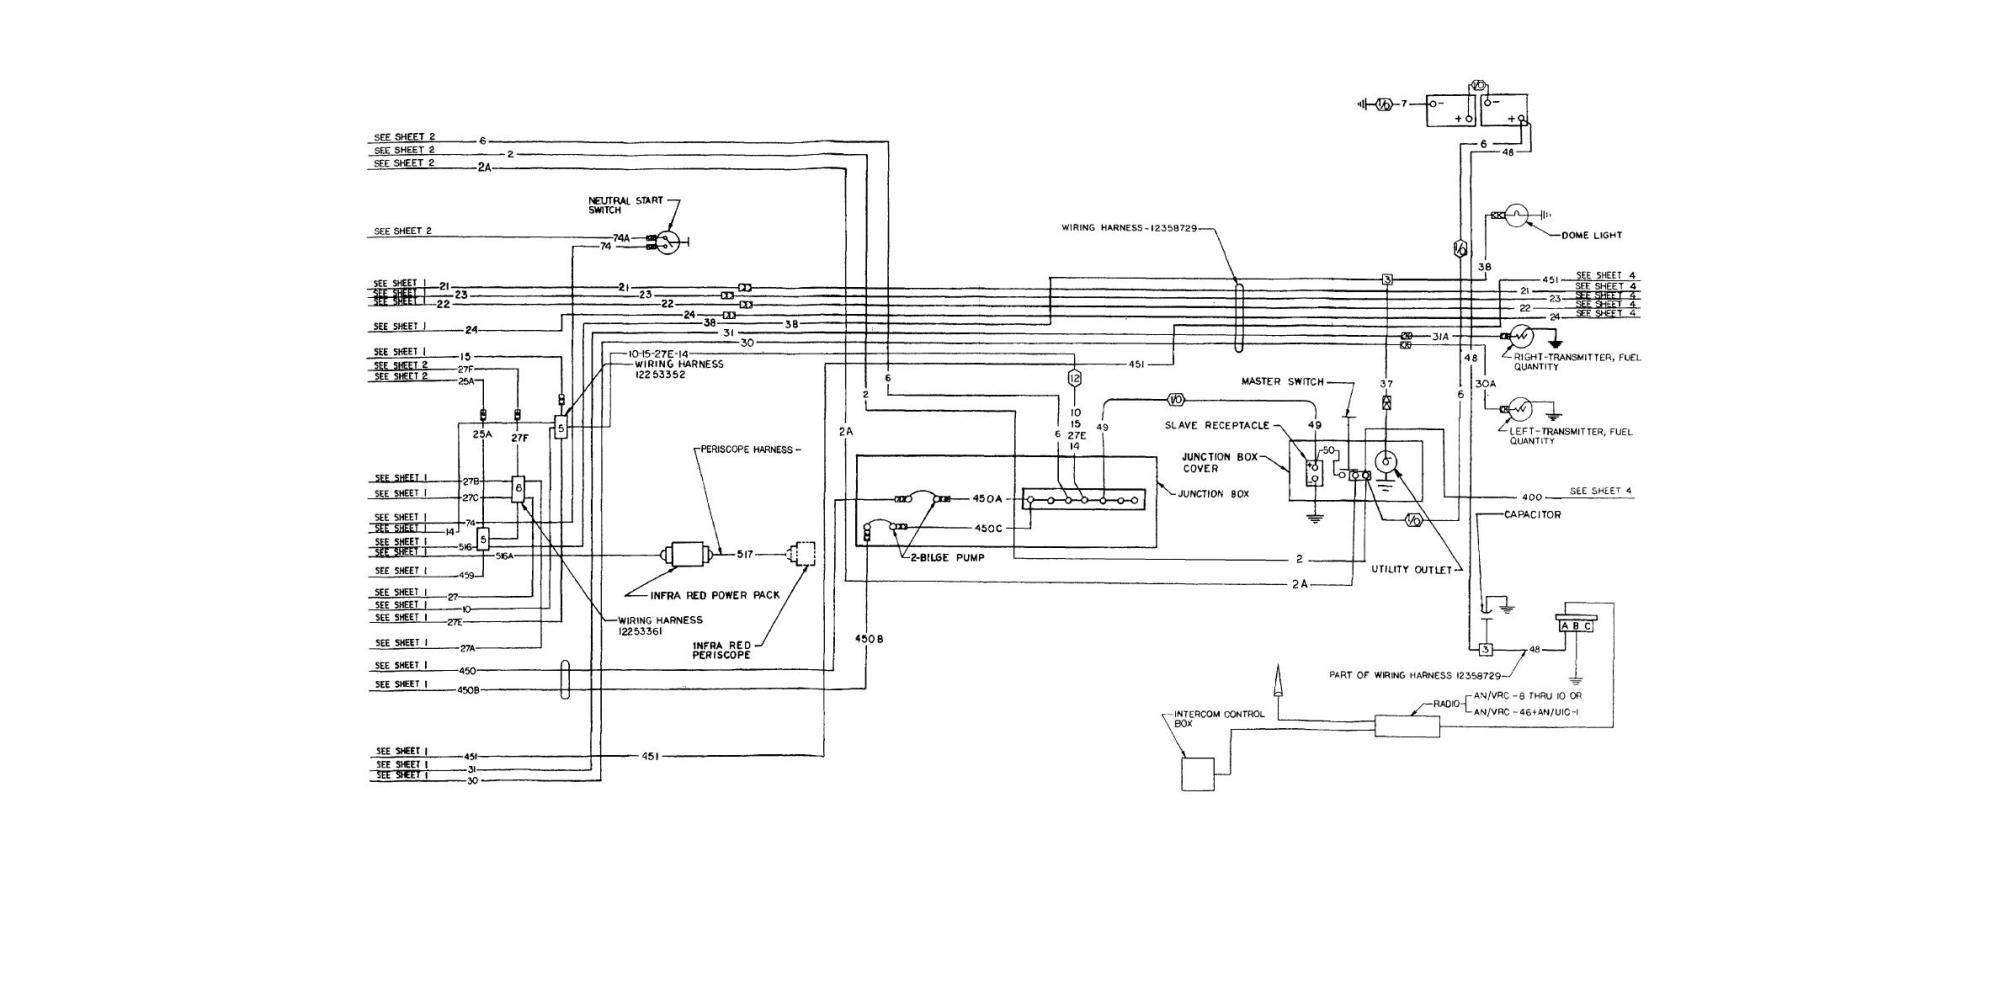 hight resolution of 320 amp meter base wiring diagram 16 underground meter base wiring diagram 320 amp meter